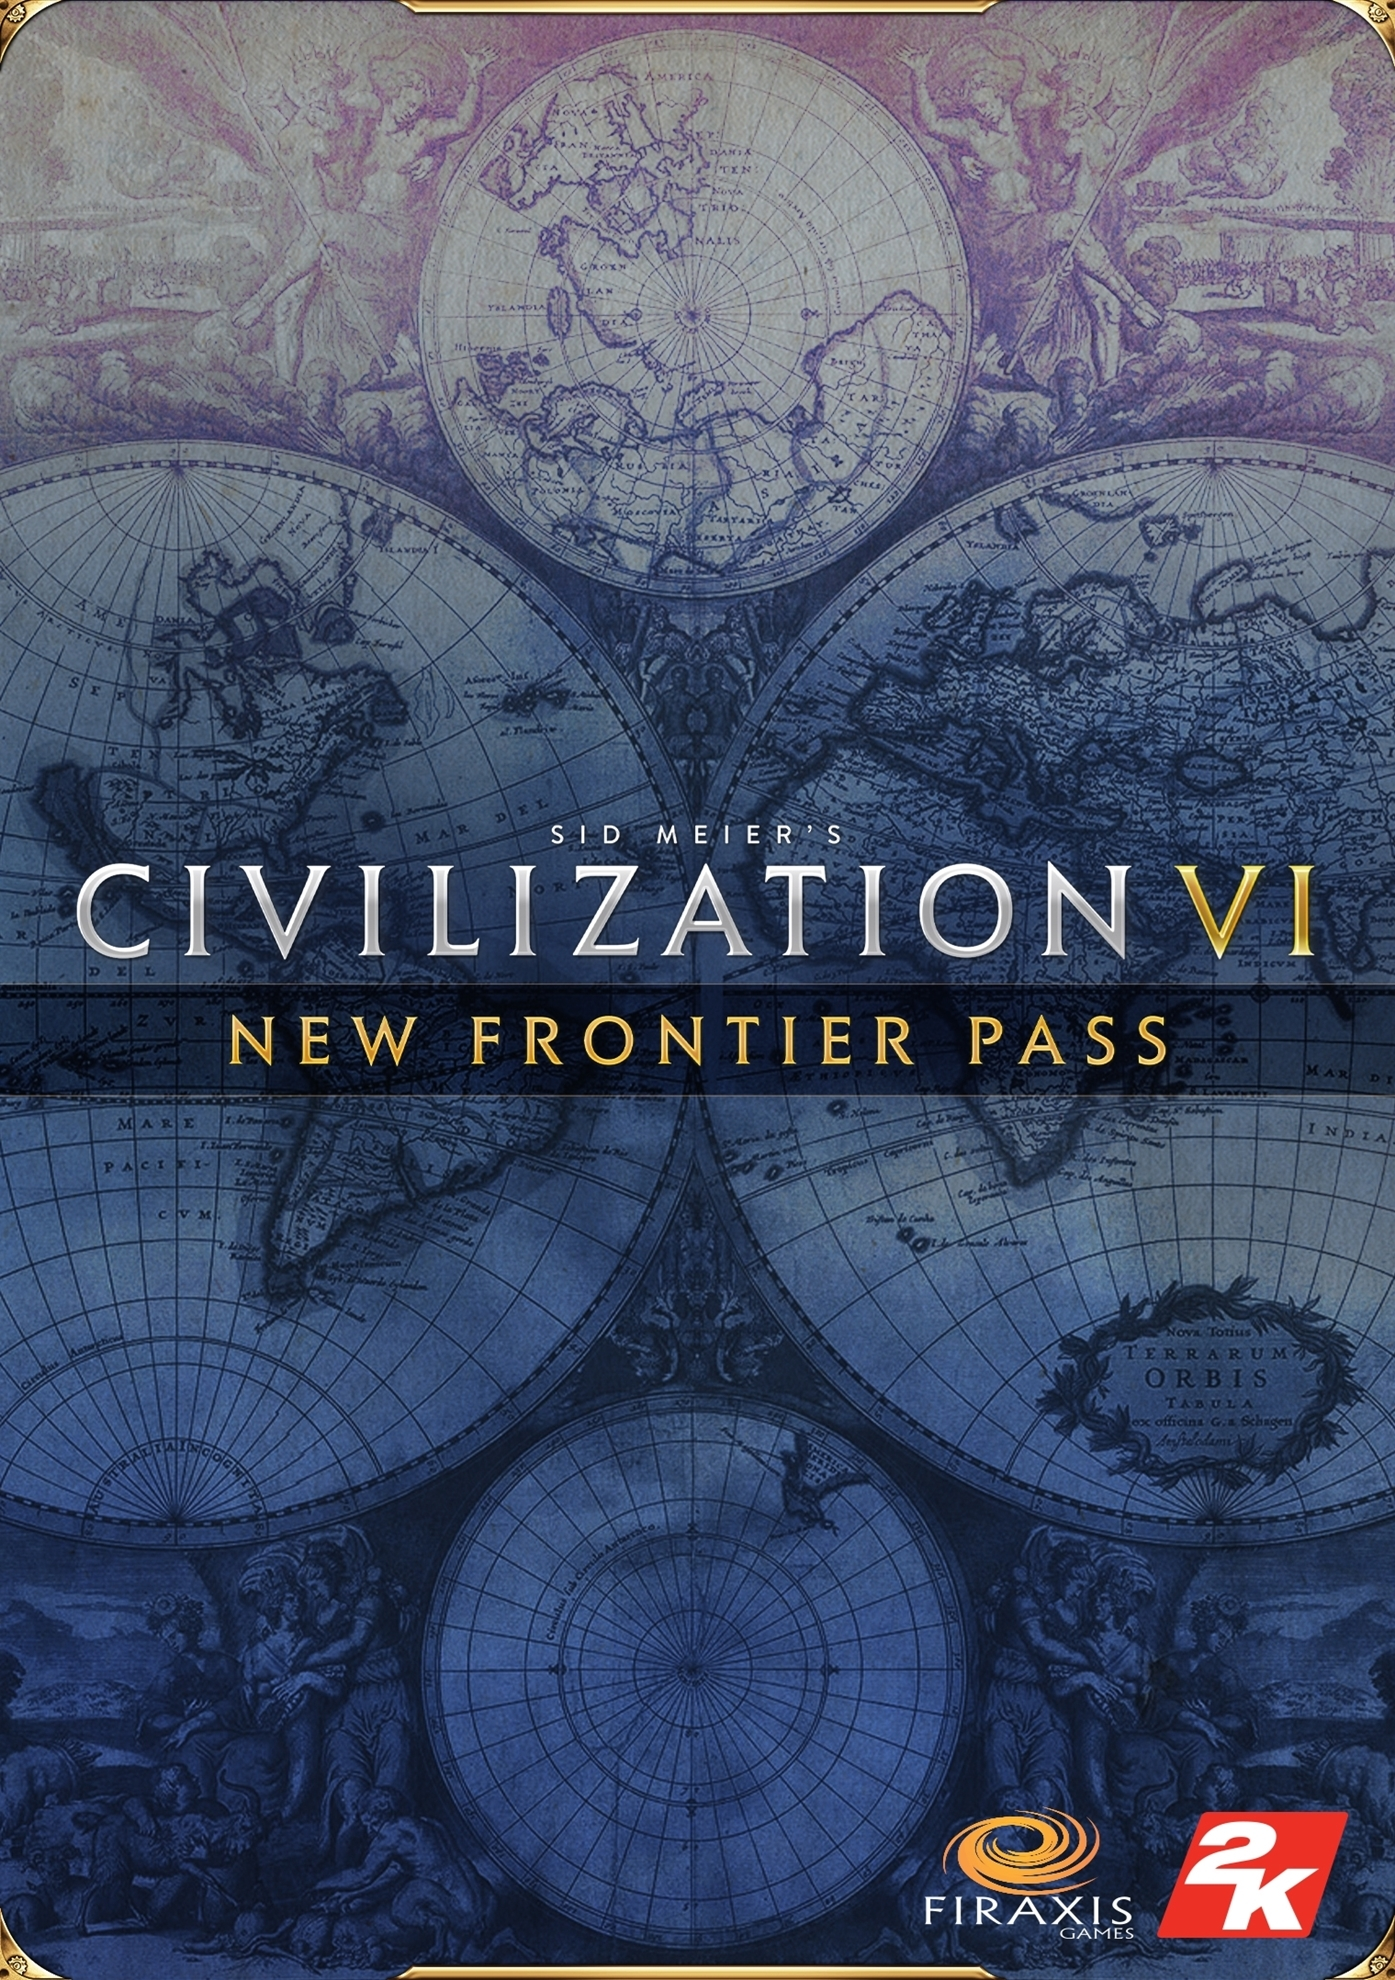 Civilization VI - New Frontier Pass (Steam) | ROW (f3e75947-b409-40c0-87b2-454afc8f63b6)